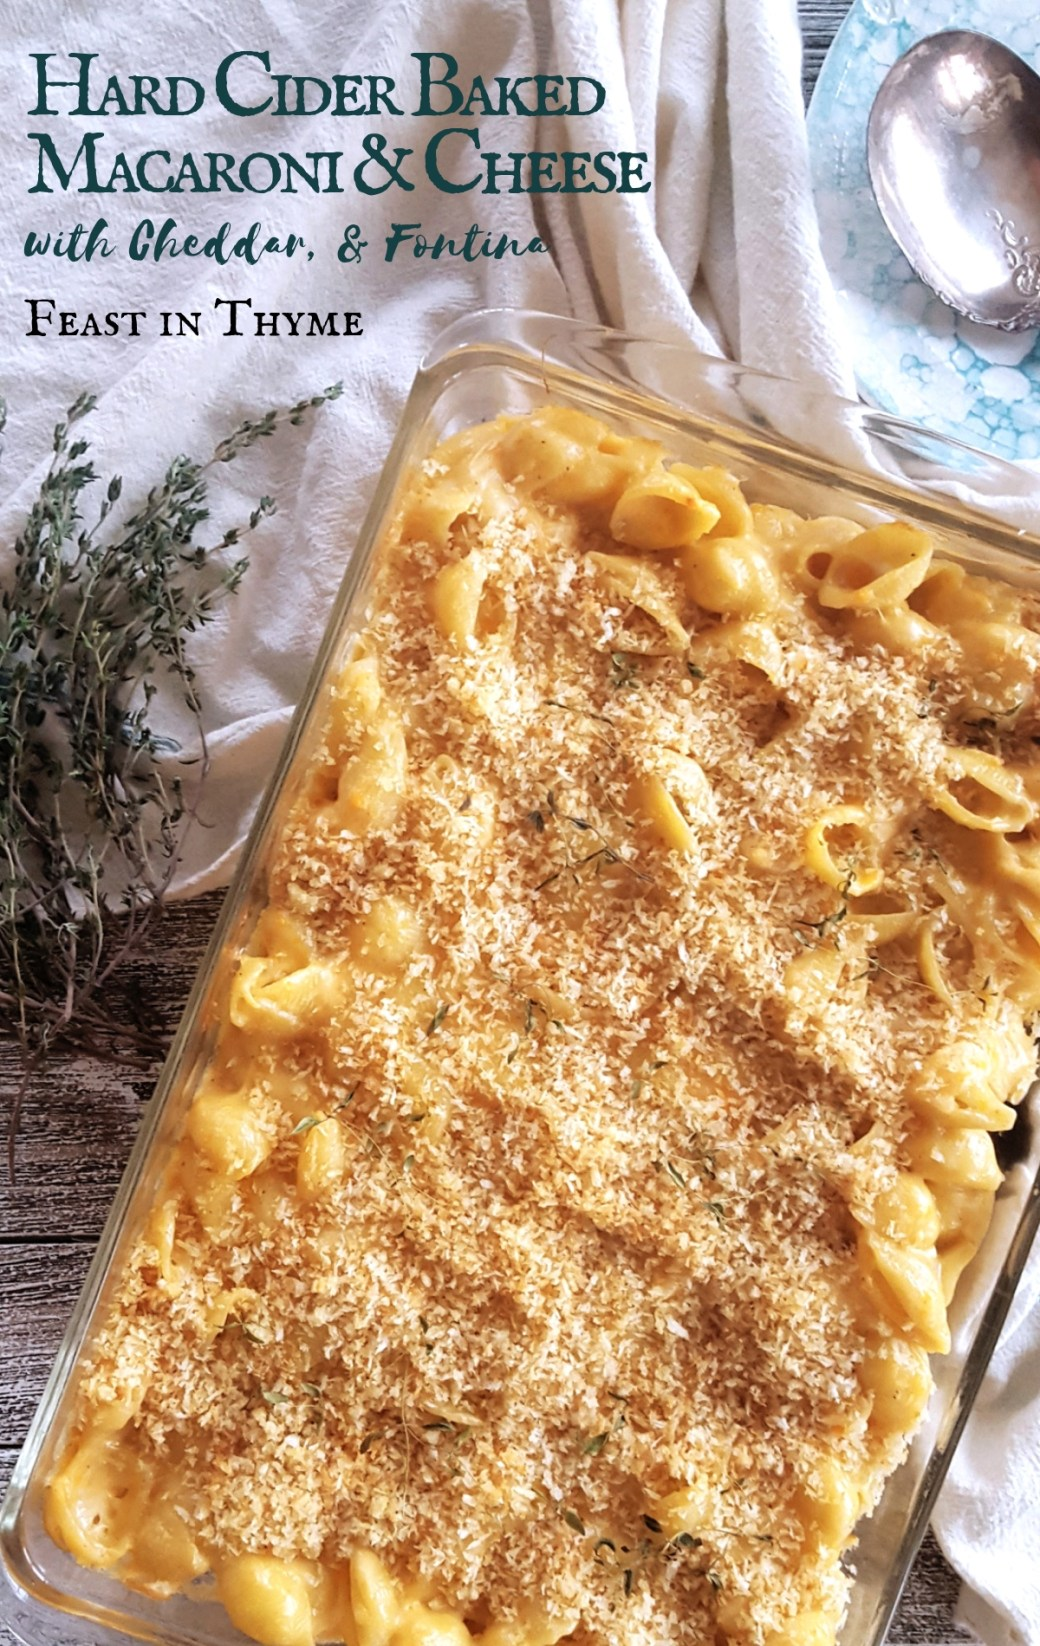 With two kinds of cheddar and creamy fontina, this Hard Cider Baked Macaroni and Cheese is a decadent side dish with just a hint of sweet apple goodness. #cheese #cider #easydinner #casserole | FeastInThyme.com